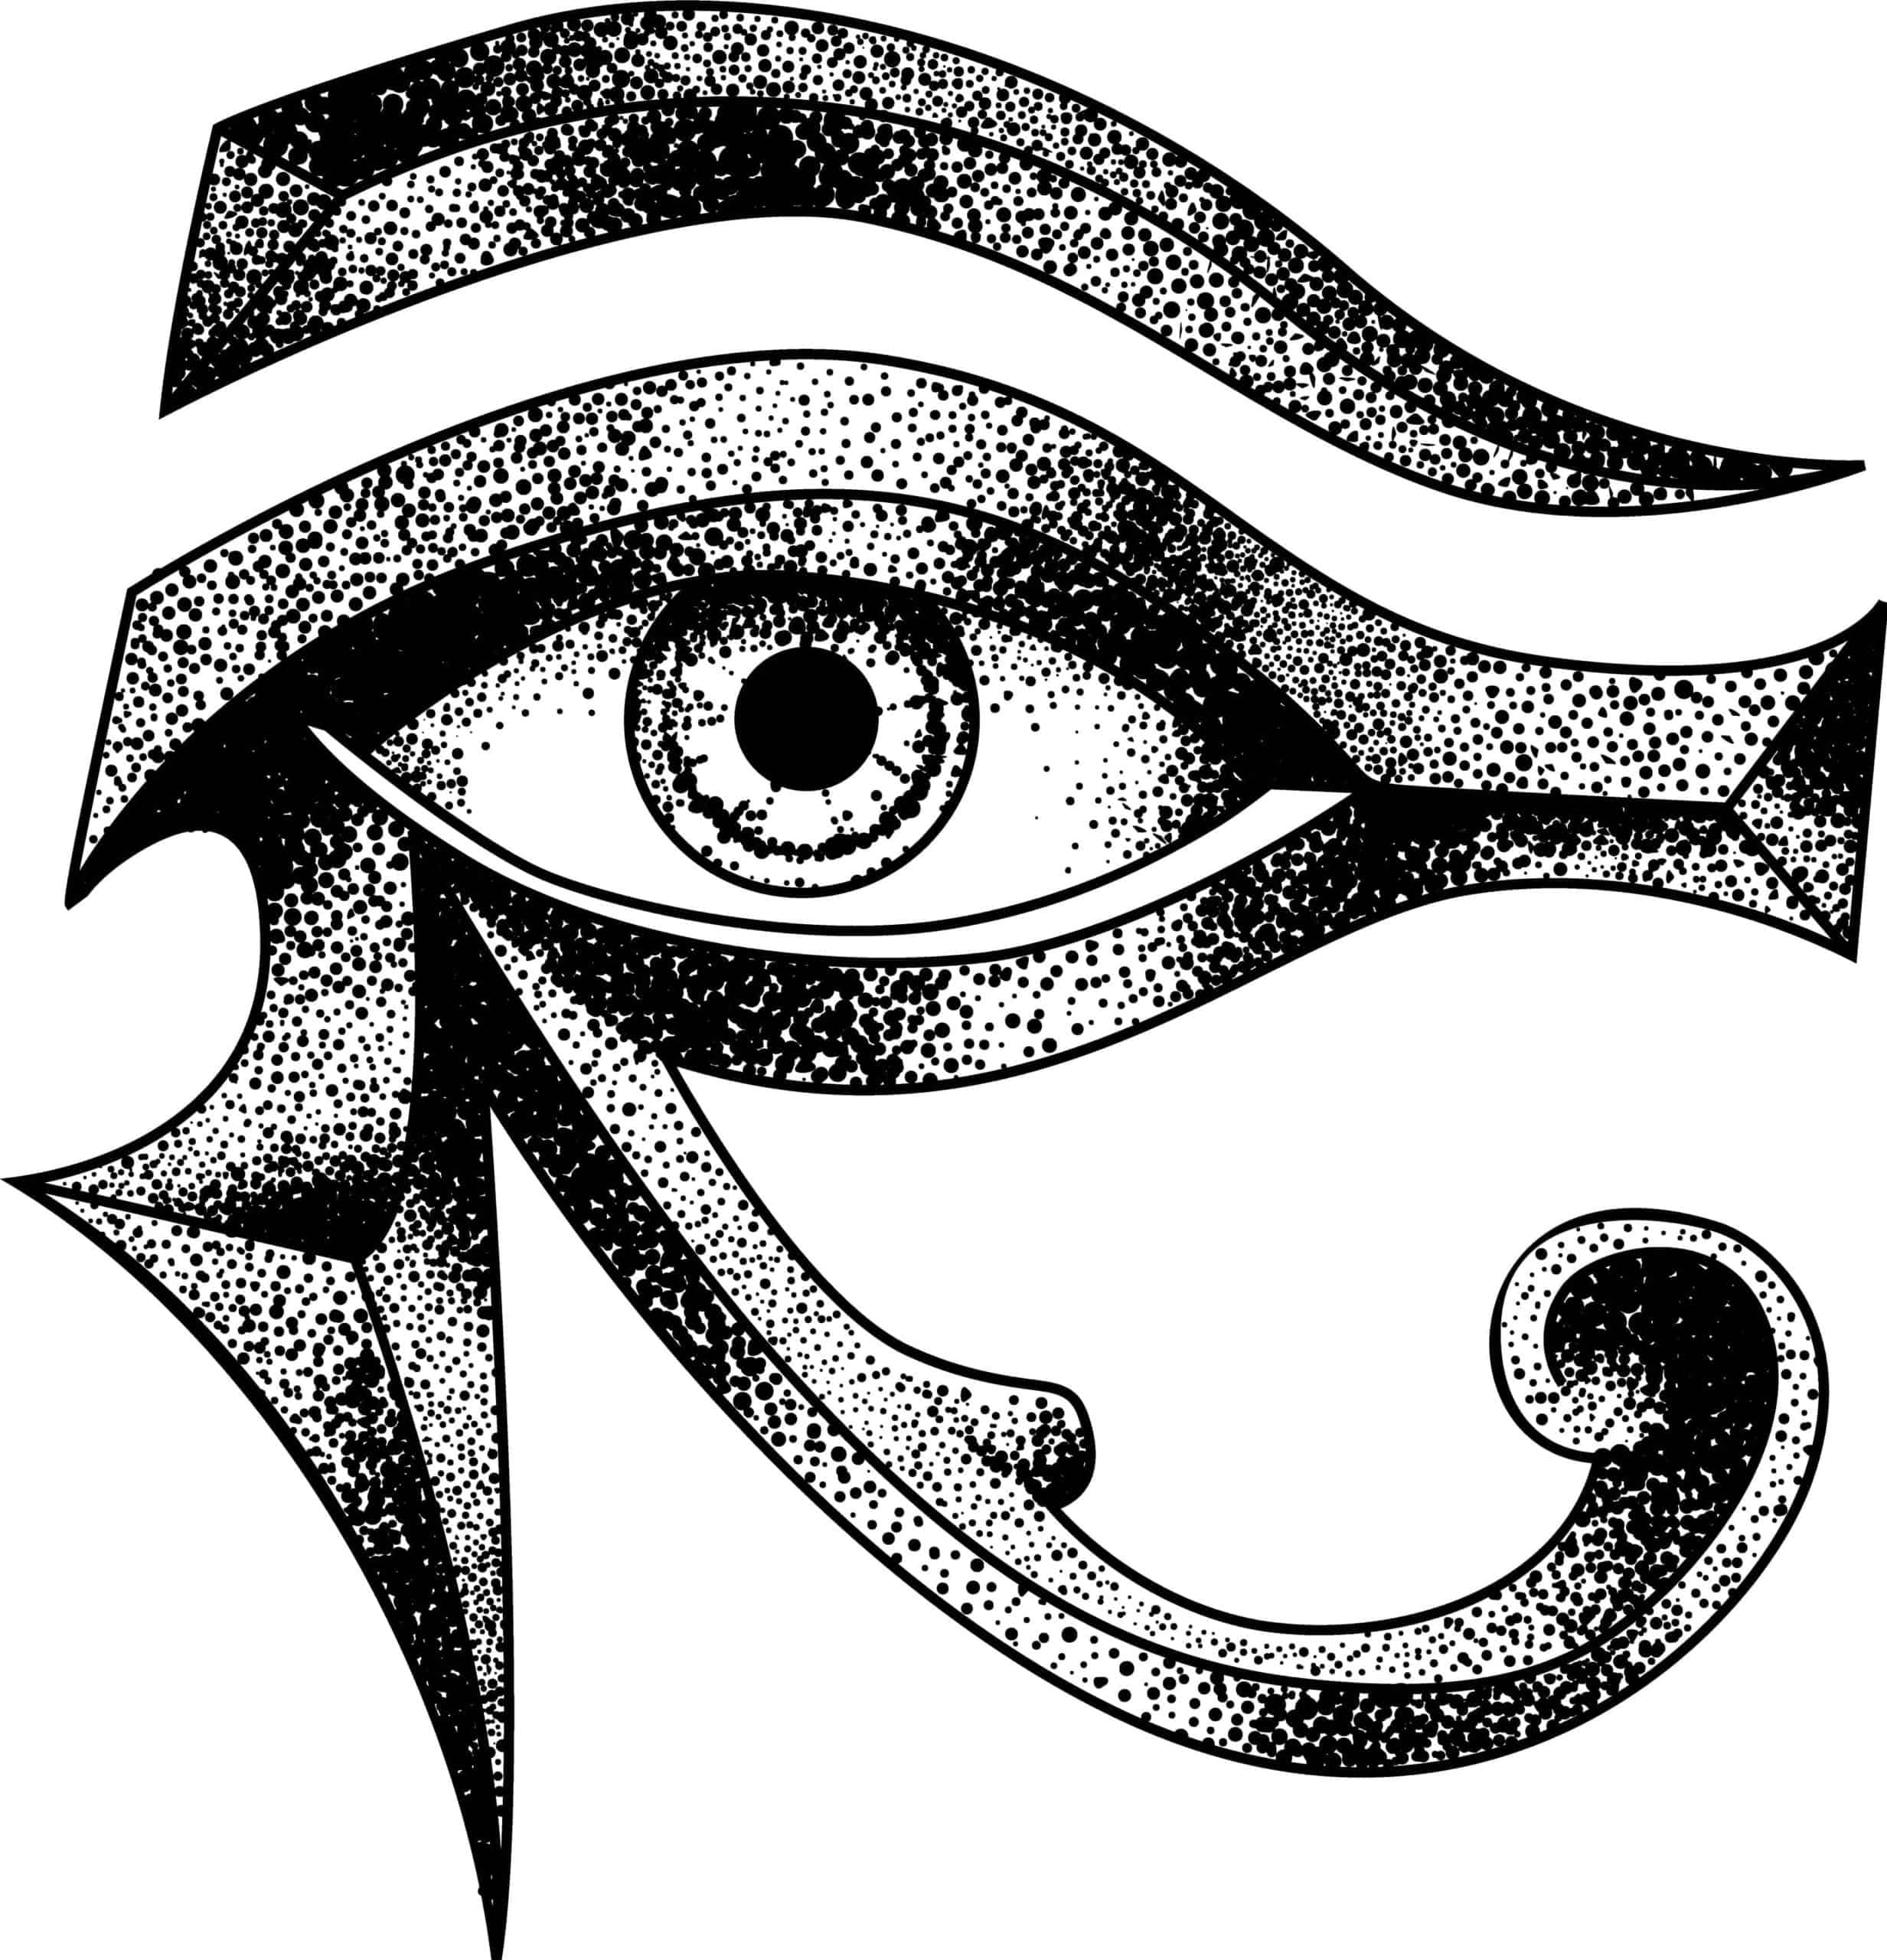 The Difference Between Eye of Ra And Eye of Horus Symbols Explained, Eye of Horus Vs. Eye of Ra